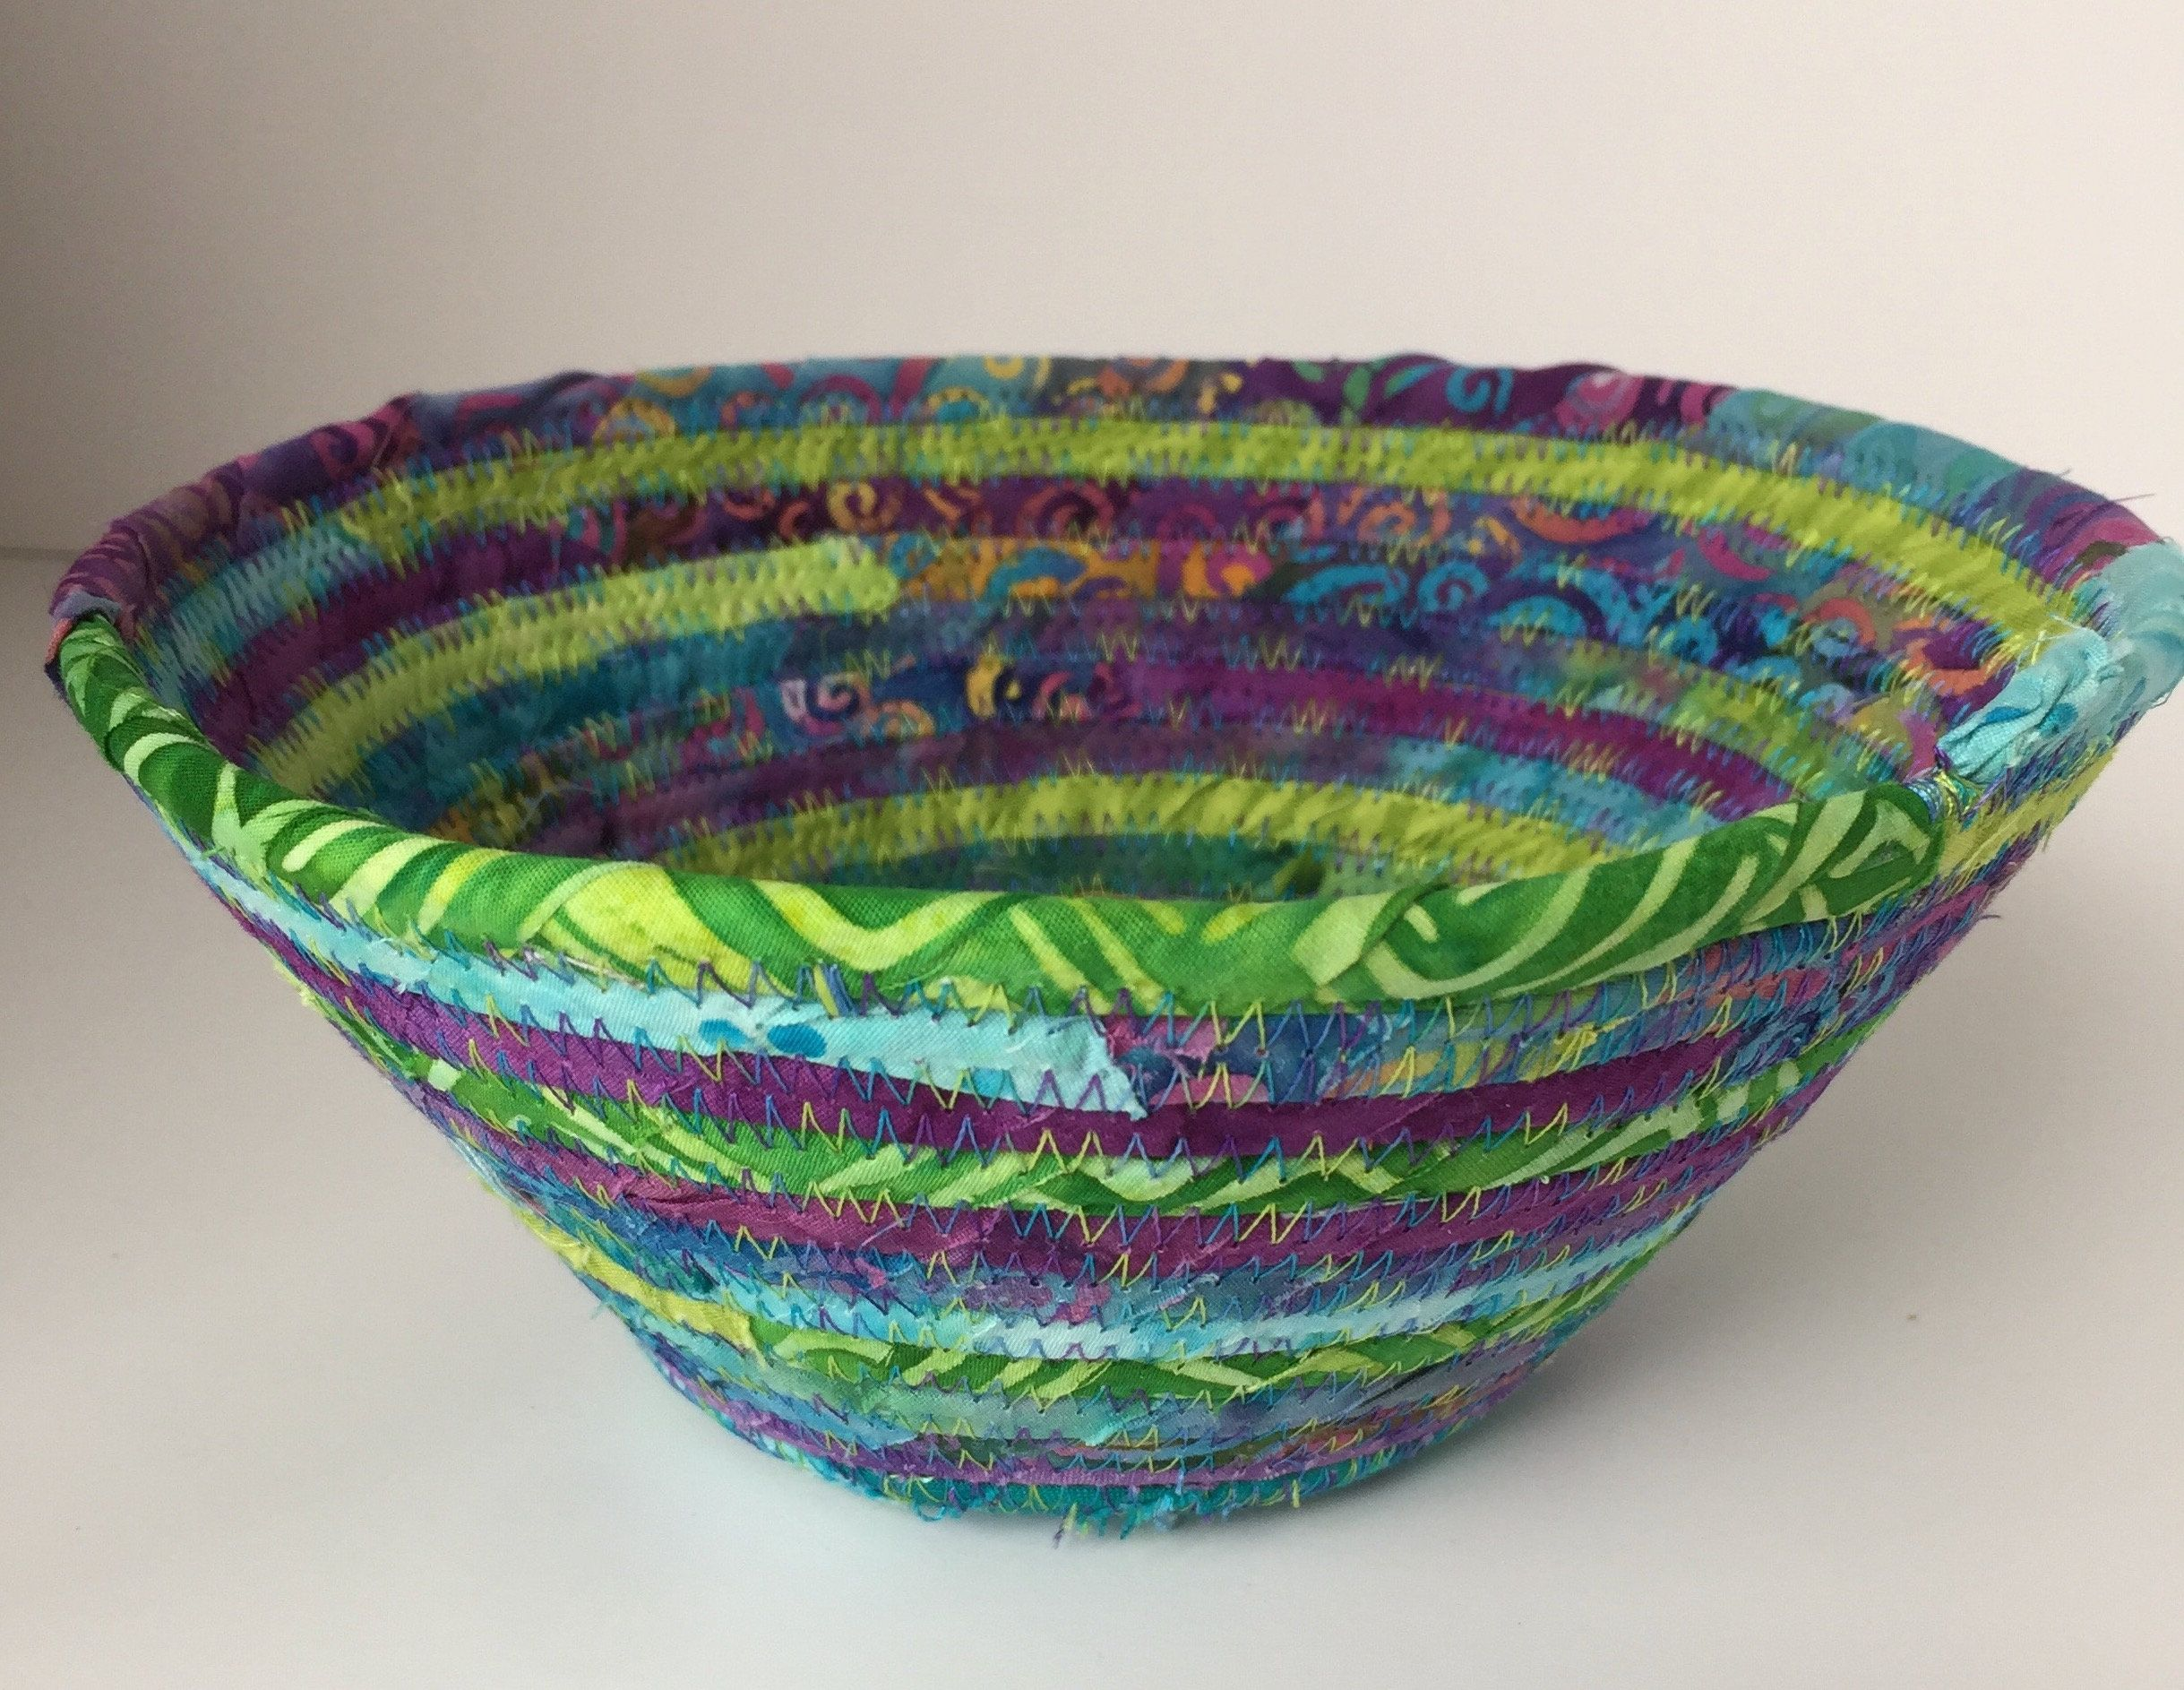 Ring Bowl Key Holder Colorful Fabric Bowl Cell Phone Holder Jewelry Bowl Remote Control Holder Fabric Bowl Coiled Fabric Bowl In 2020 Fabric Bowls Coiled Fabric Bowl Batik Fabric